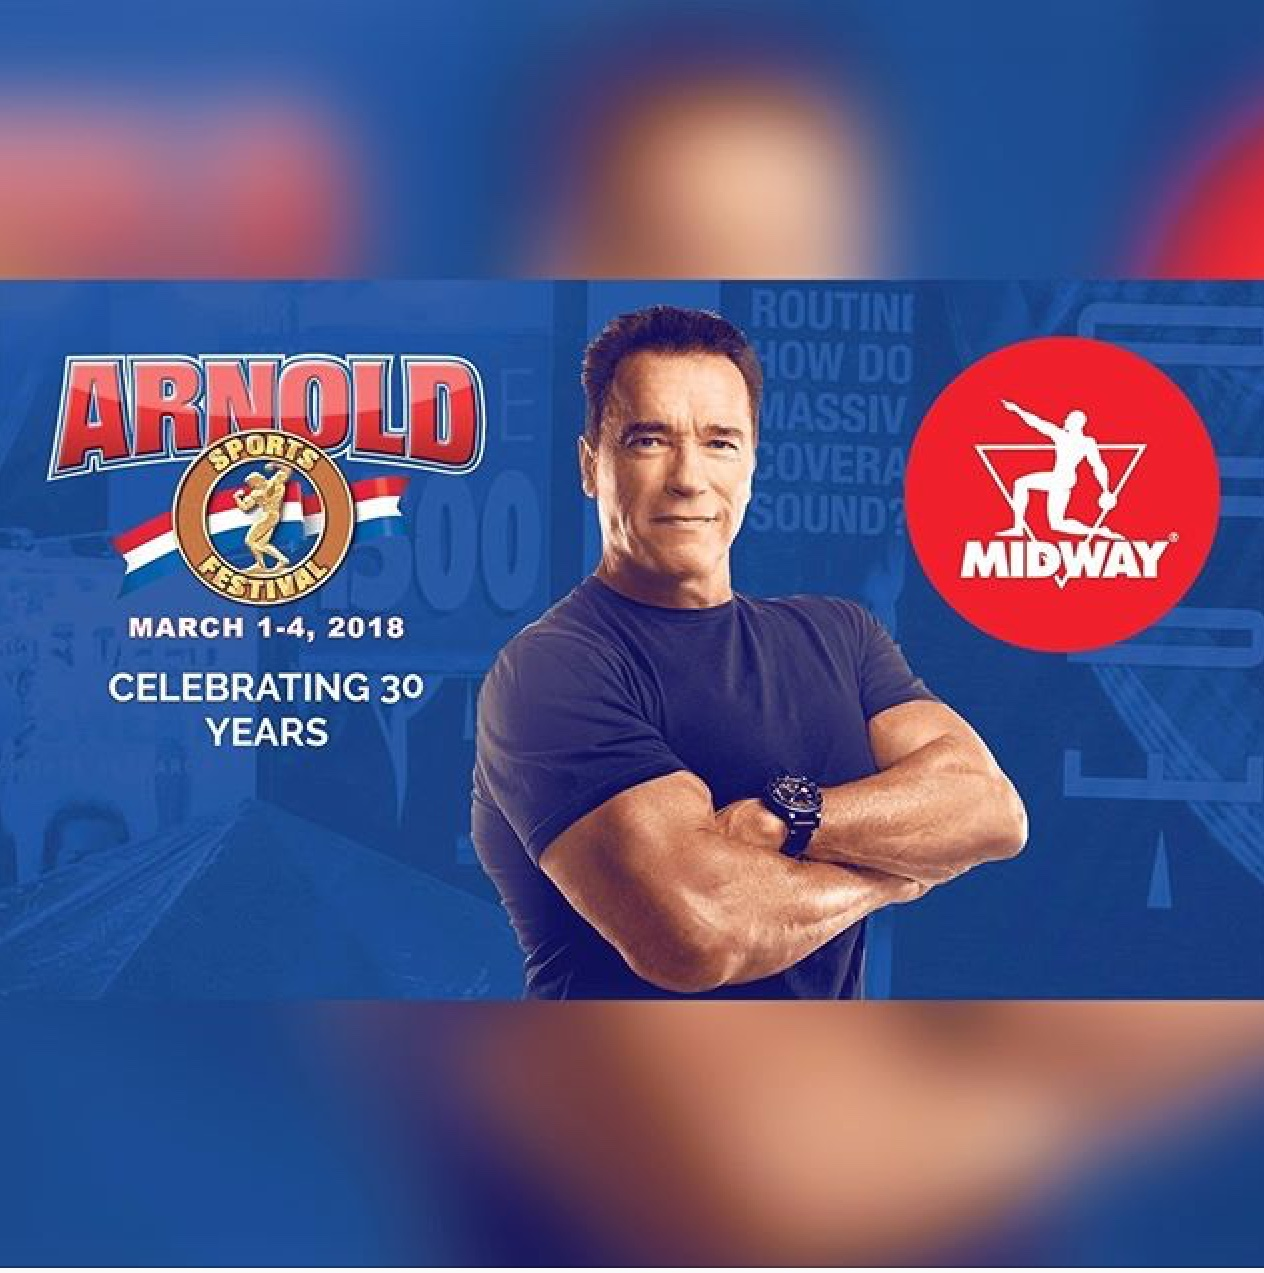 Midway Labs is the above the line sponsor for Arnold Classic Ohio 2018